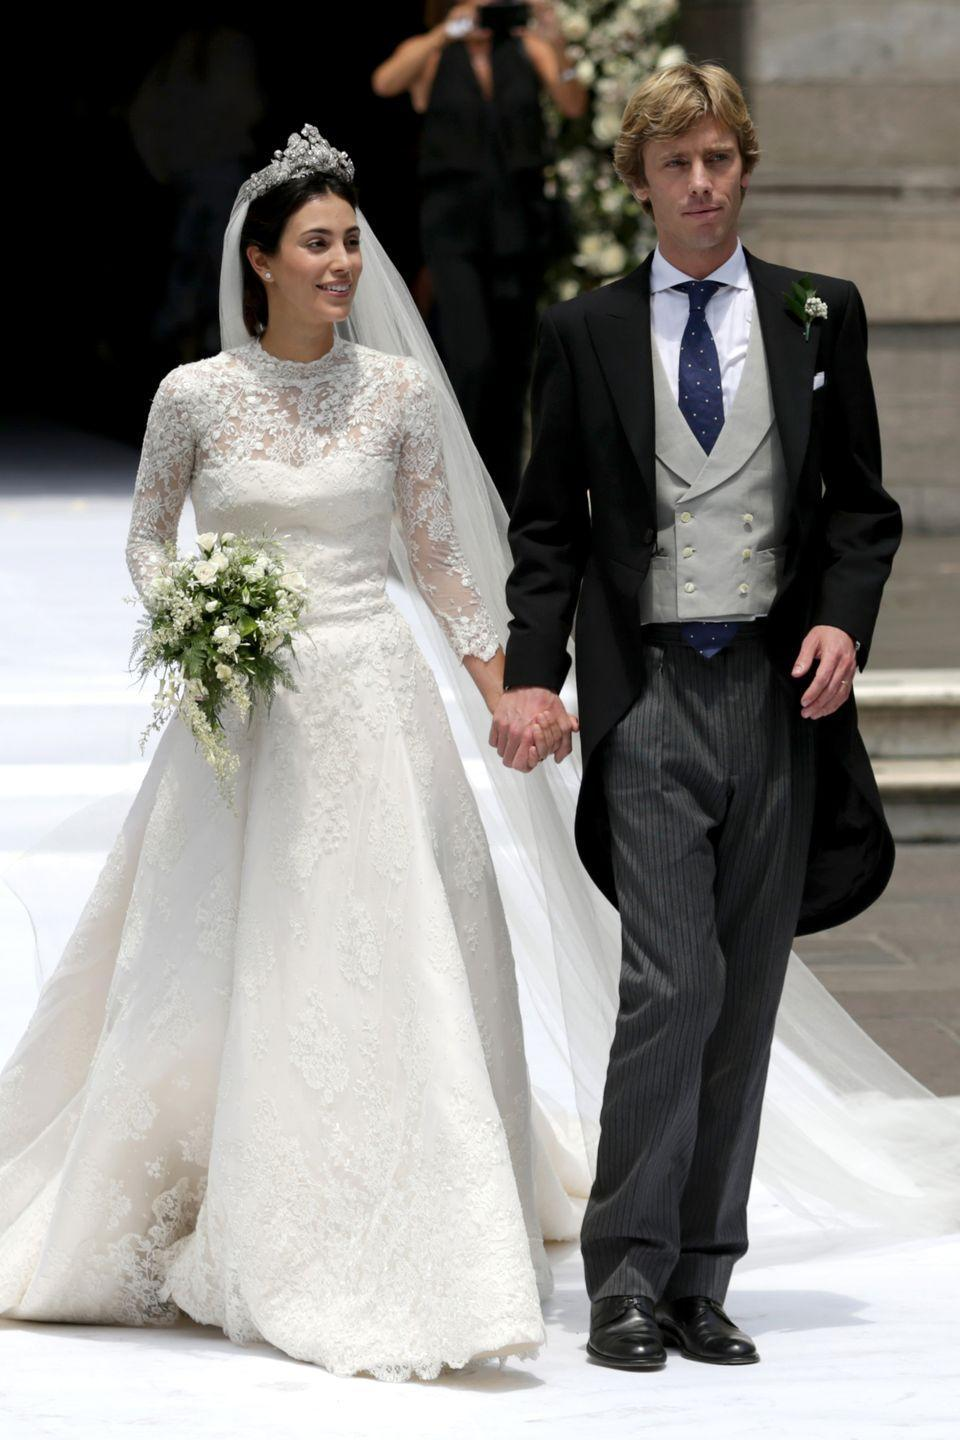 "<p>Prince Christian of Hanover first met Alessandra de Osma in 2005, when she was his tour guide during one of his visits to Peru–but they didn't start dating until years later. Their first appearance as a couple was in 2011, <a class=""link rapid-noclick-resp"" href=""https://us.hola.com/en/celebrities/201706088546/prince-christian-hanover-alessandra-de-osma-wedding-2018-peru/"" rel=""nofollow noopener"" target=""_blank"" data-ylk=""slk:Hola""><em>Hola</em></a> reports. They were engaged in April 2017, according to <a class=""link rapid-noclick-resp"" href=""https://www.popsugar.com/celebrity/Prince-Christian-Hanover-Alessandra-Wedding-Pictures-44674210"" rel=""nofollow noopener"" target=""_blank"" data-ylk=""slk:PopSugar""><em>PopSugar</em></a>. This marked the second wedding for the couple; they first said ""I do"" in a civil ceremony in London in November 2017. The couple had their formal ceremony in Lima, on March 16, 2018.</p>"